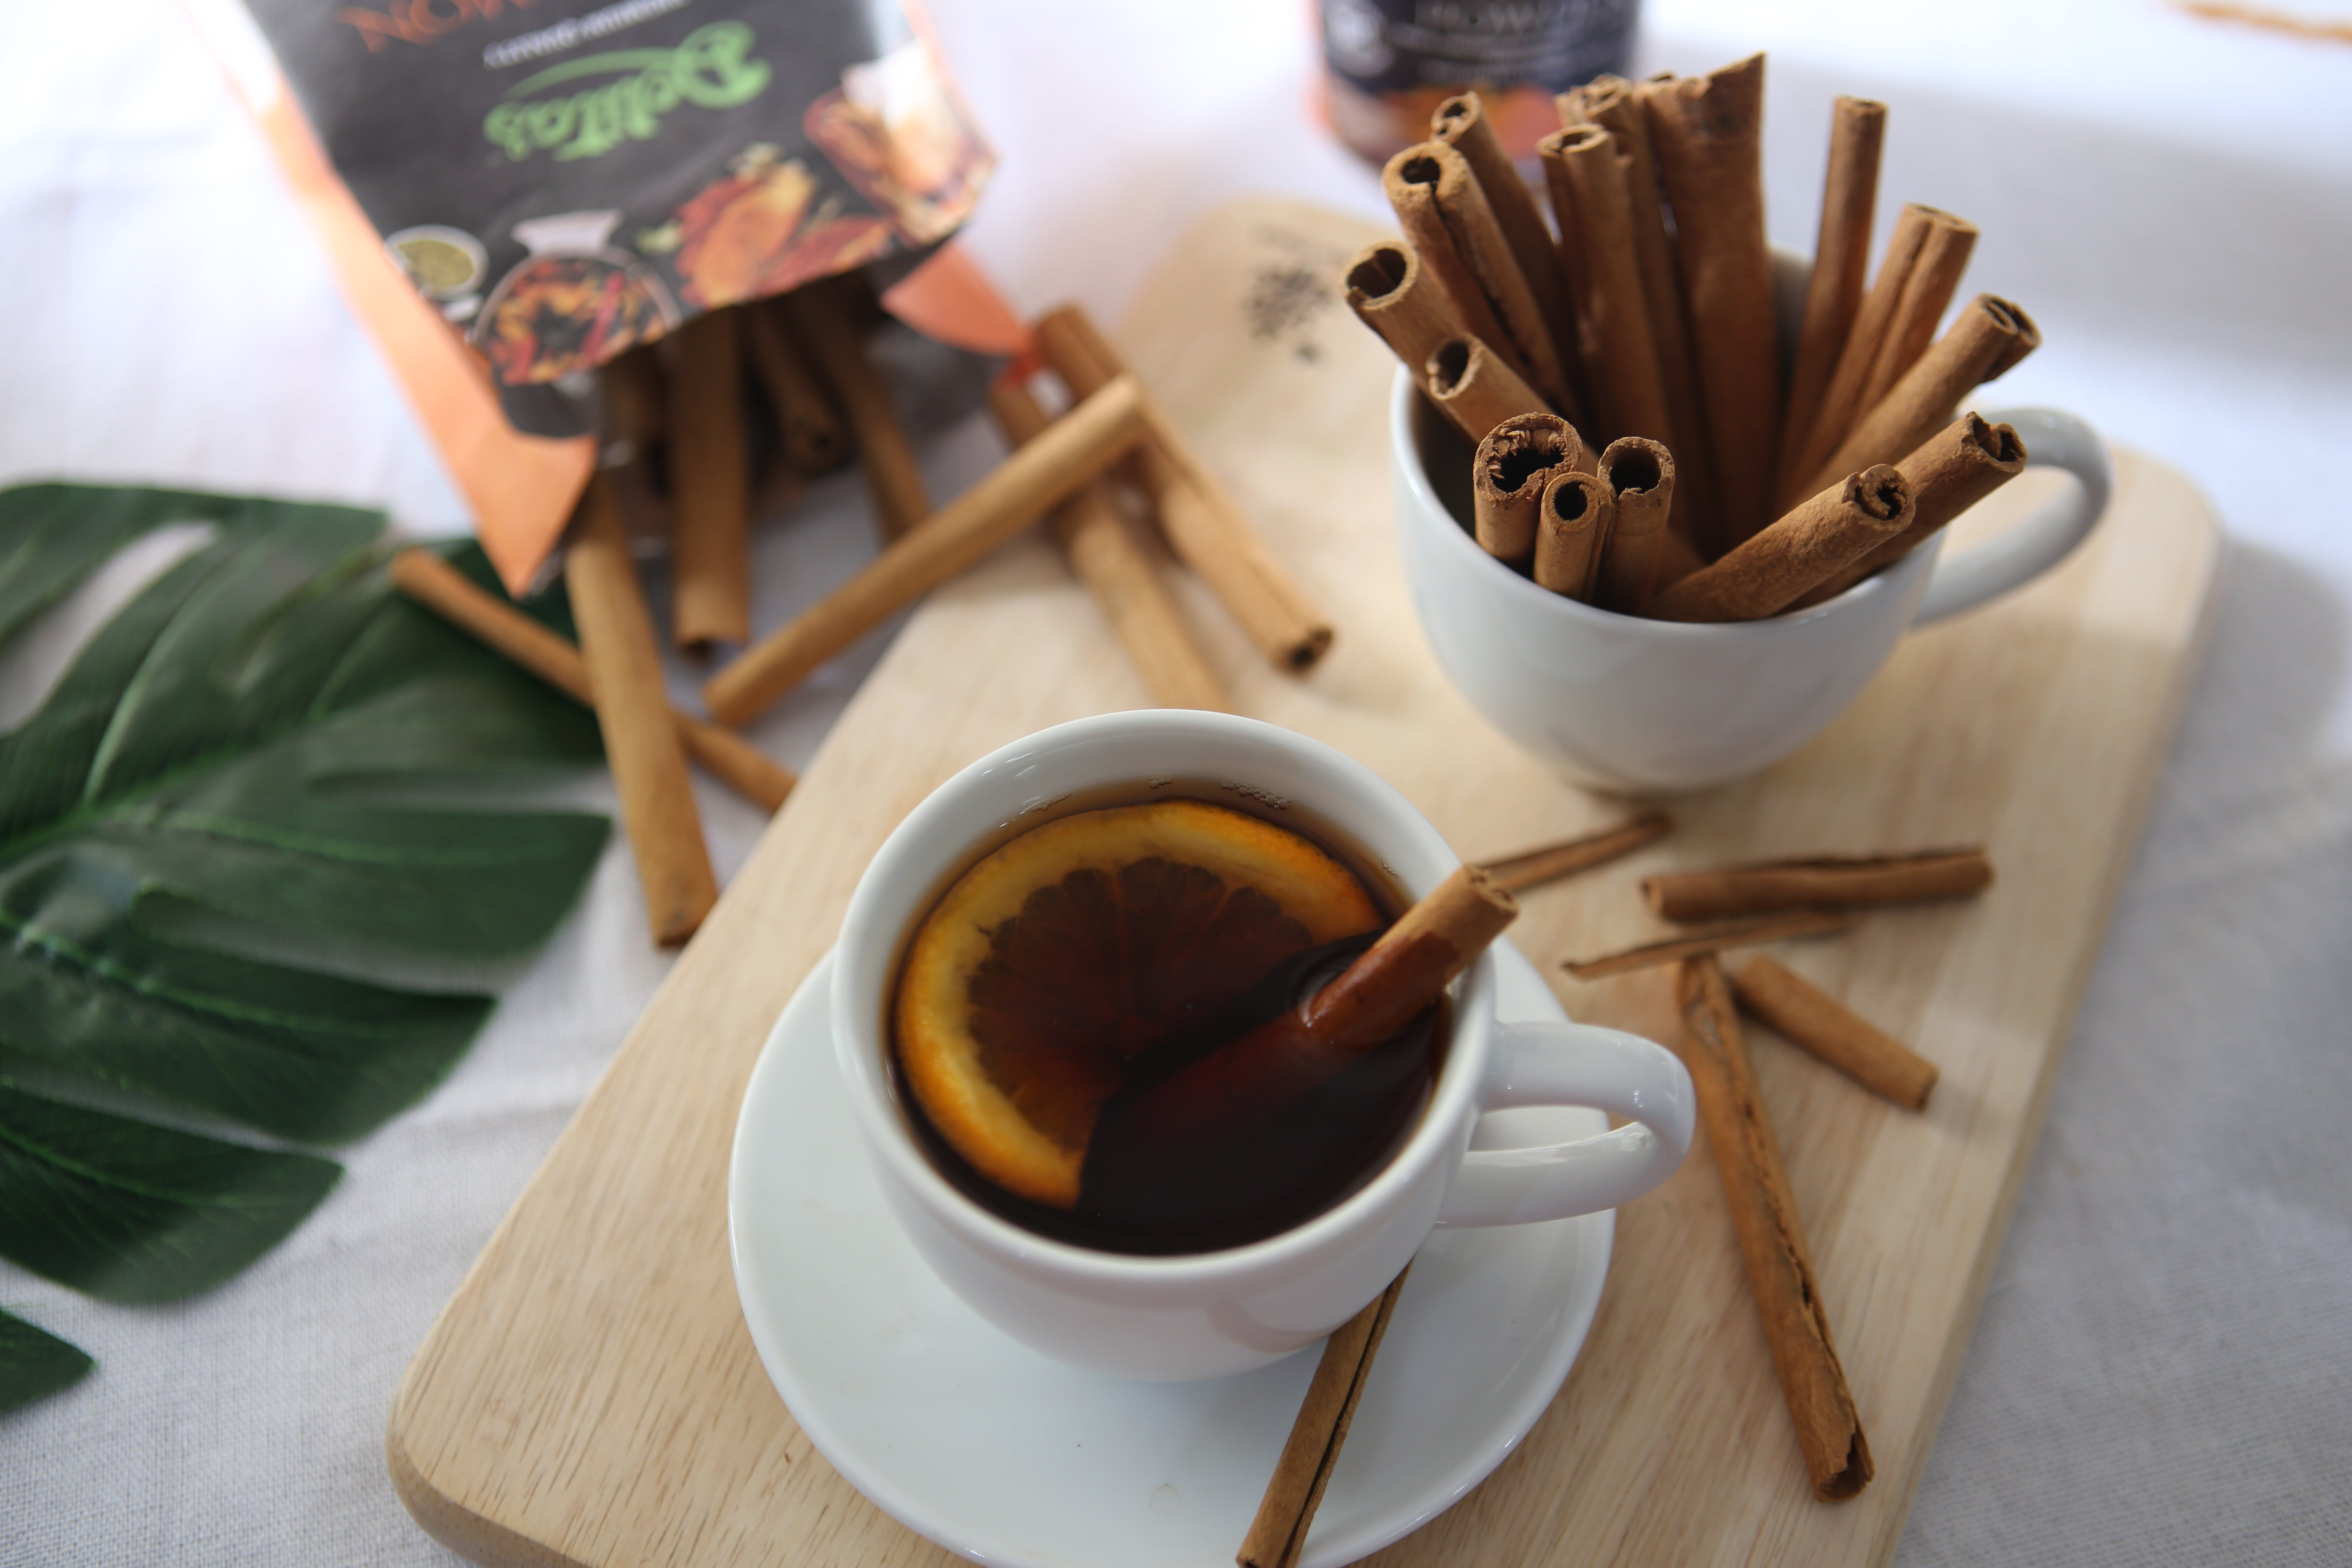 Photography of Cinnamon Sticks on Cup